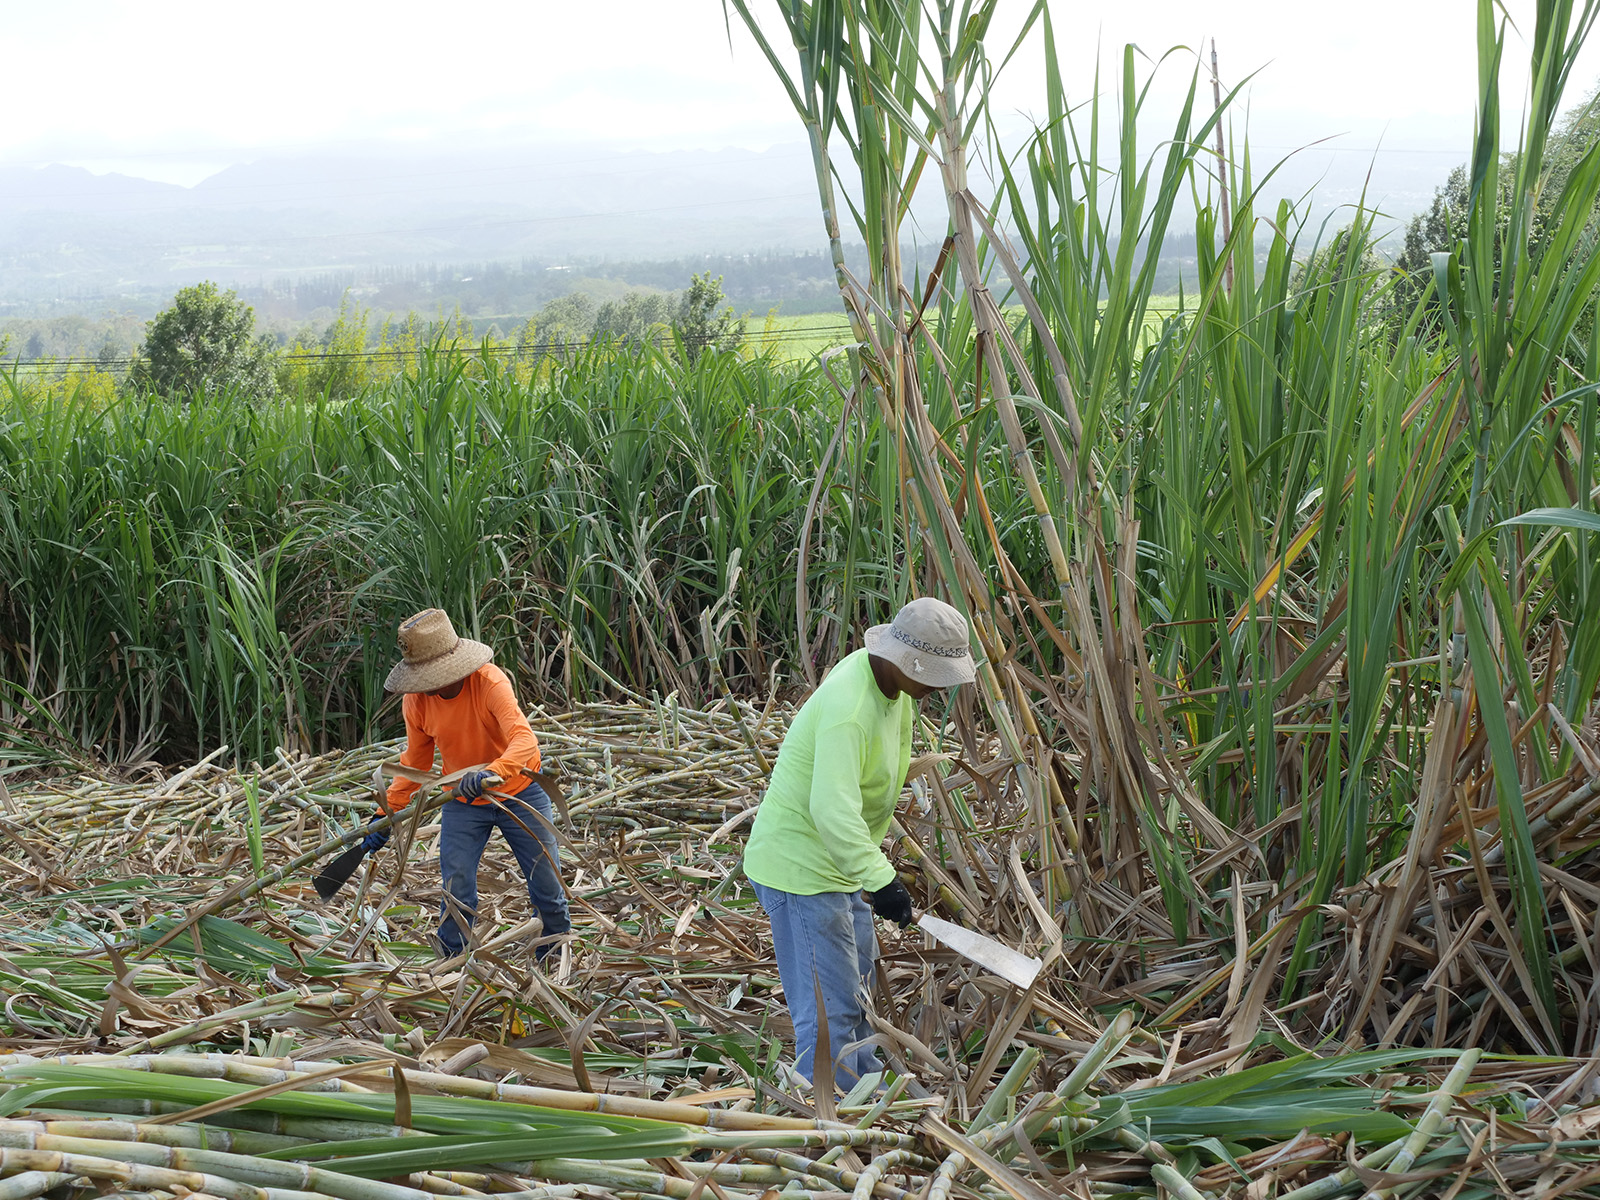 <p>Farmers harvest sugar cane by hand for the Ko Hana Hawaiian Agricole Rum Distillery. The four or five farmers employed at the distillery harvest single varieties of cane that will yield the pure sugar cane juice used to produce the distillery's rum.</p>